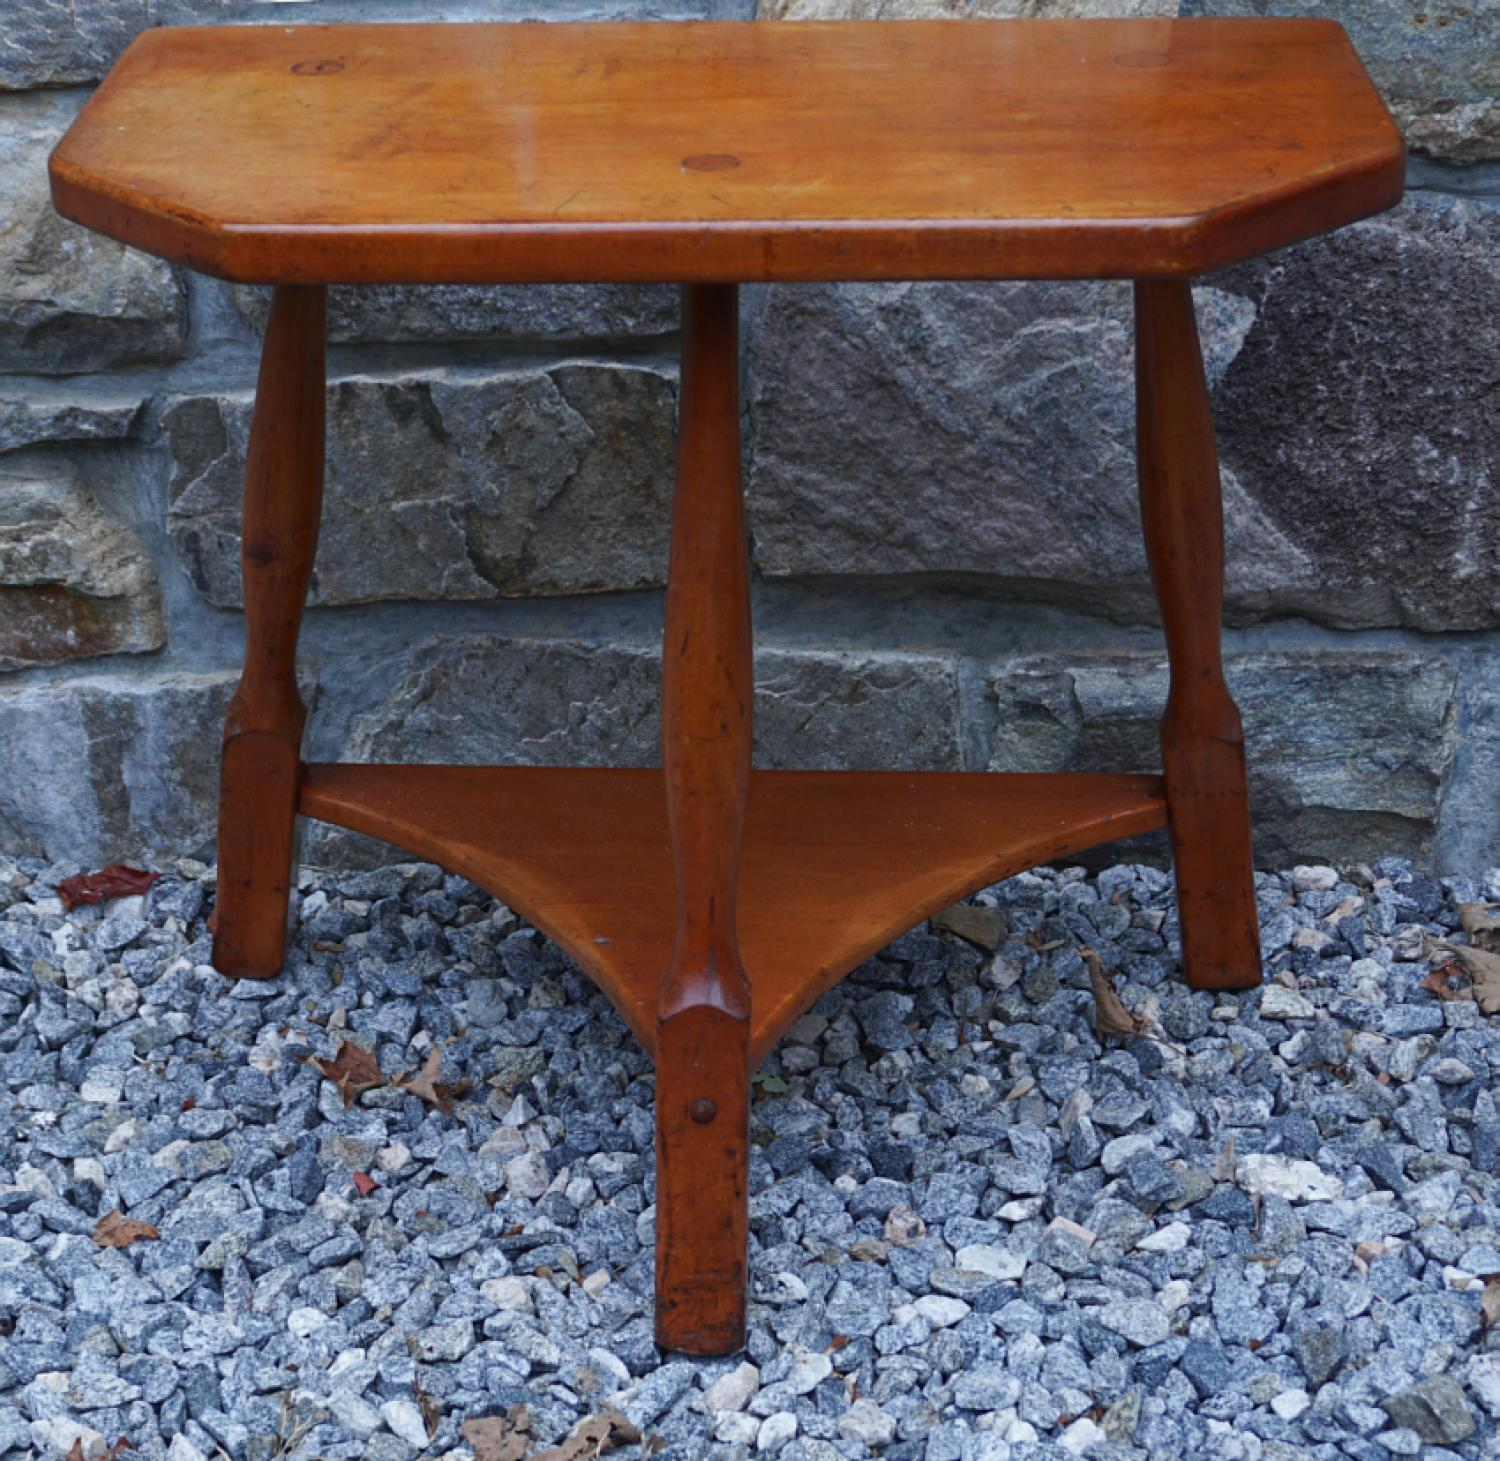 Vintage New England rock maple half table c1940